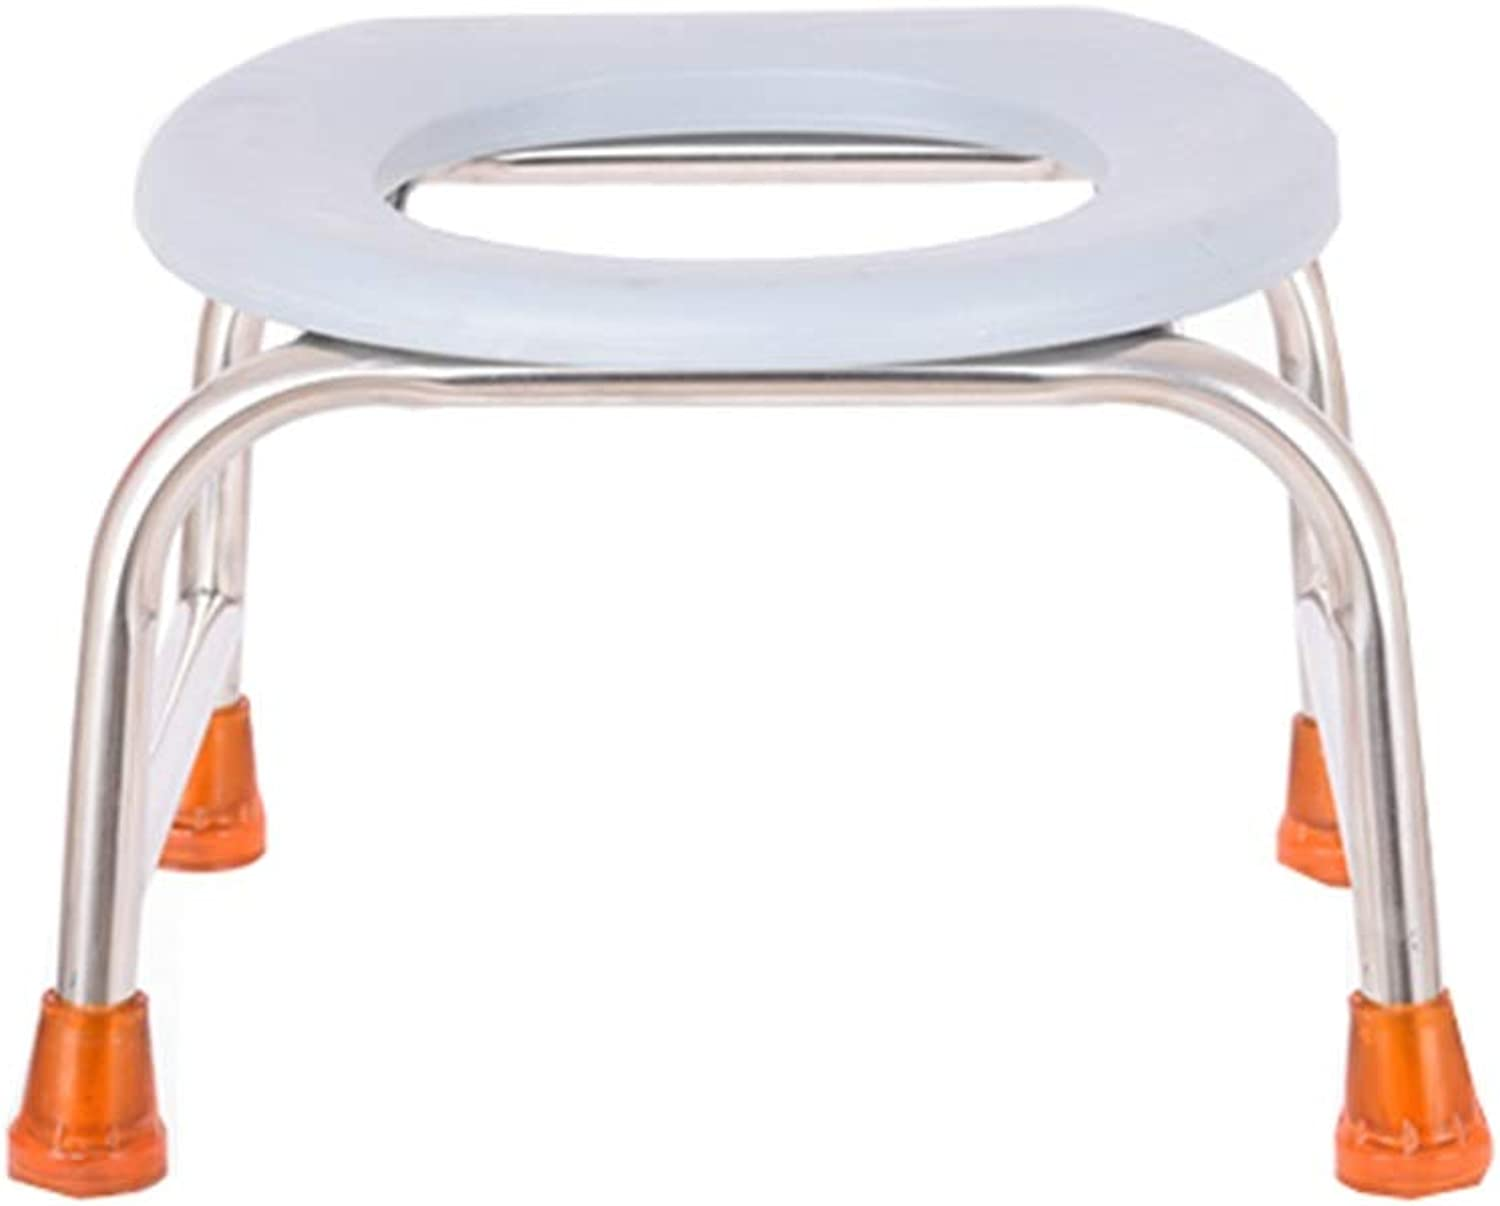 XSJZ Toilet Stool, Stainless Steel Can Adjust The Toilet Seat Toilet Seat and Frame (color   A)